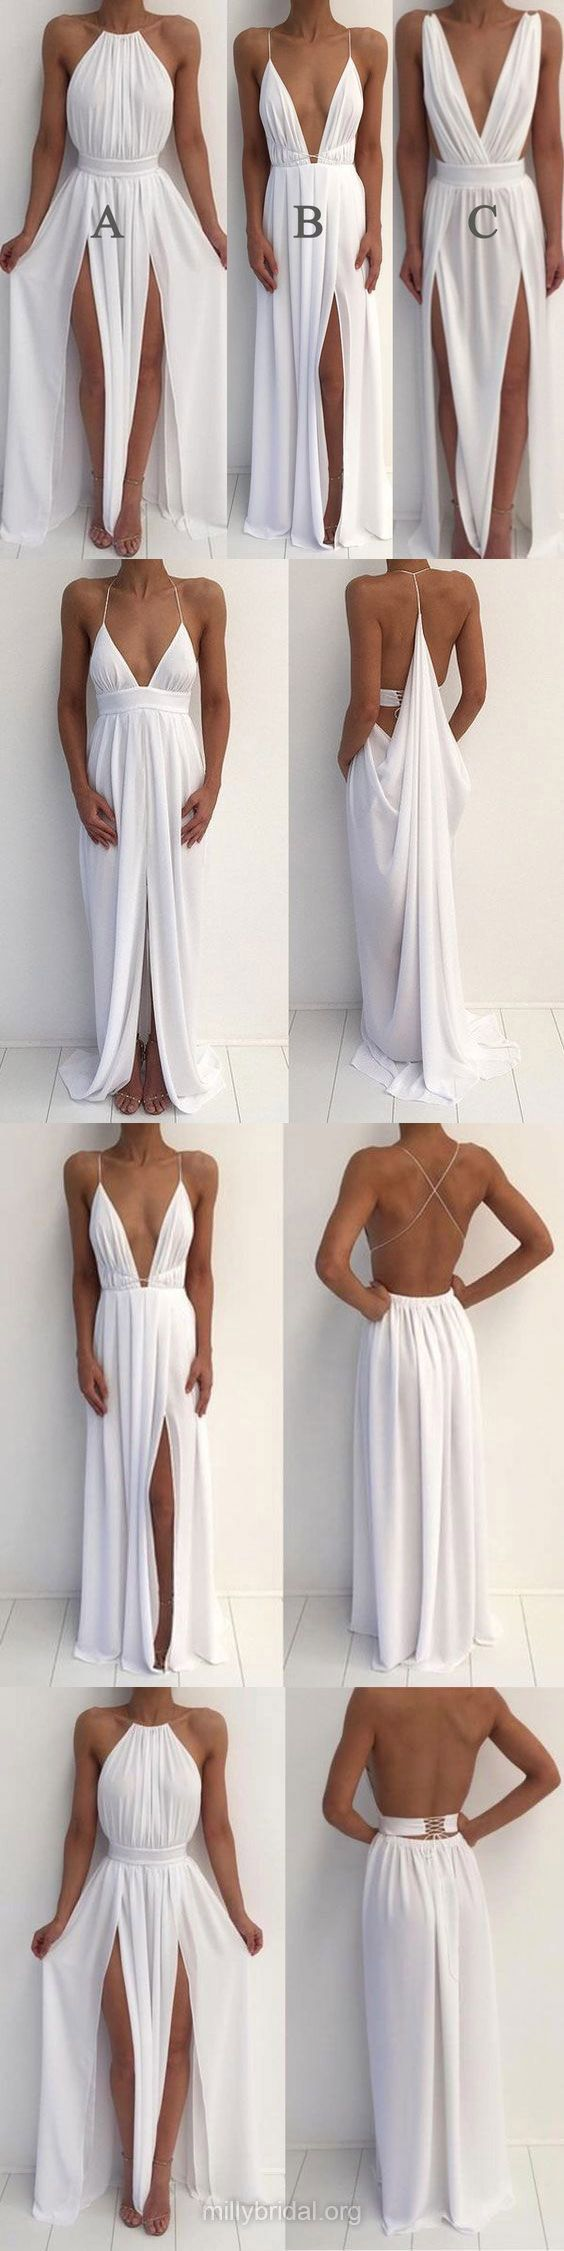 White Prom Dresses, Long Prom Dresses, 2018 Prom Dresses Summer, A-line Prom Dresses For Teens, Halter Prom Dresses Chiffon, Split Front Prom Dresses Backless